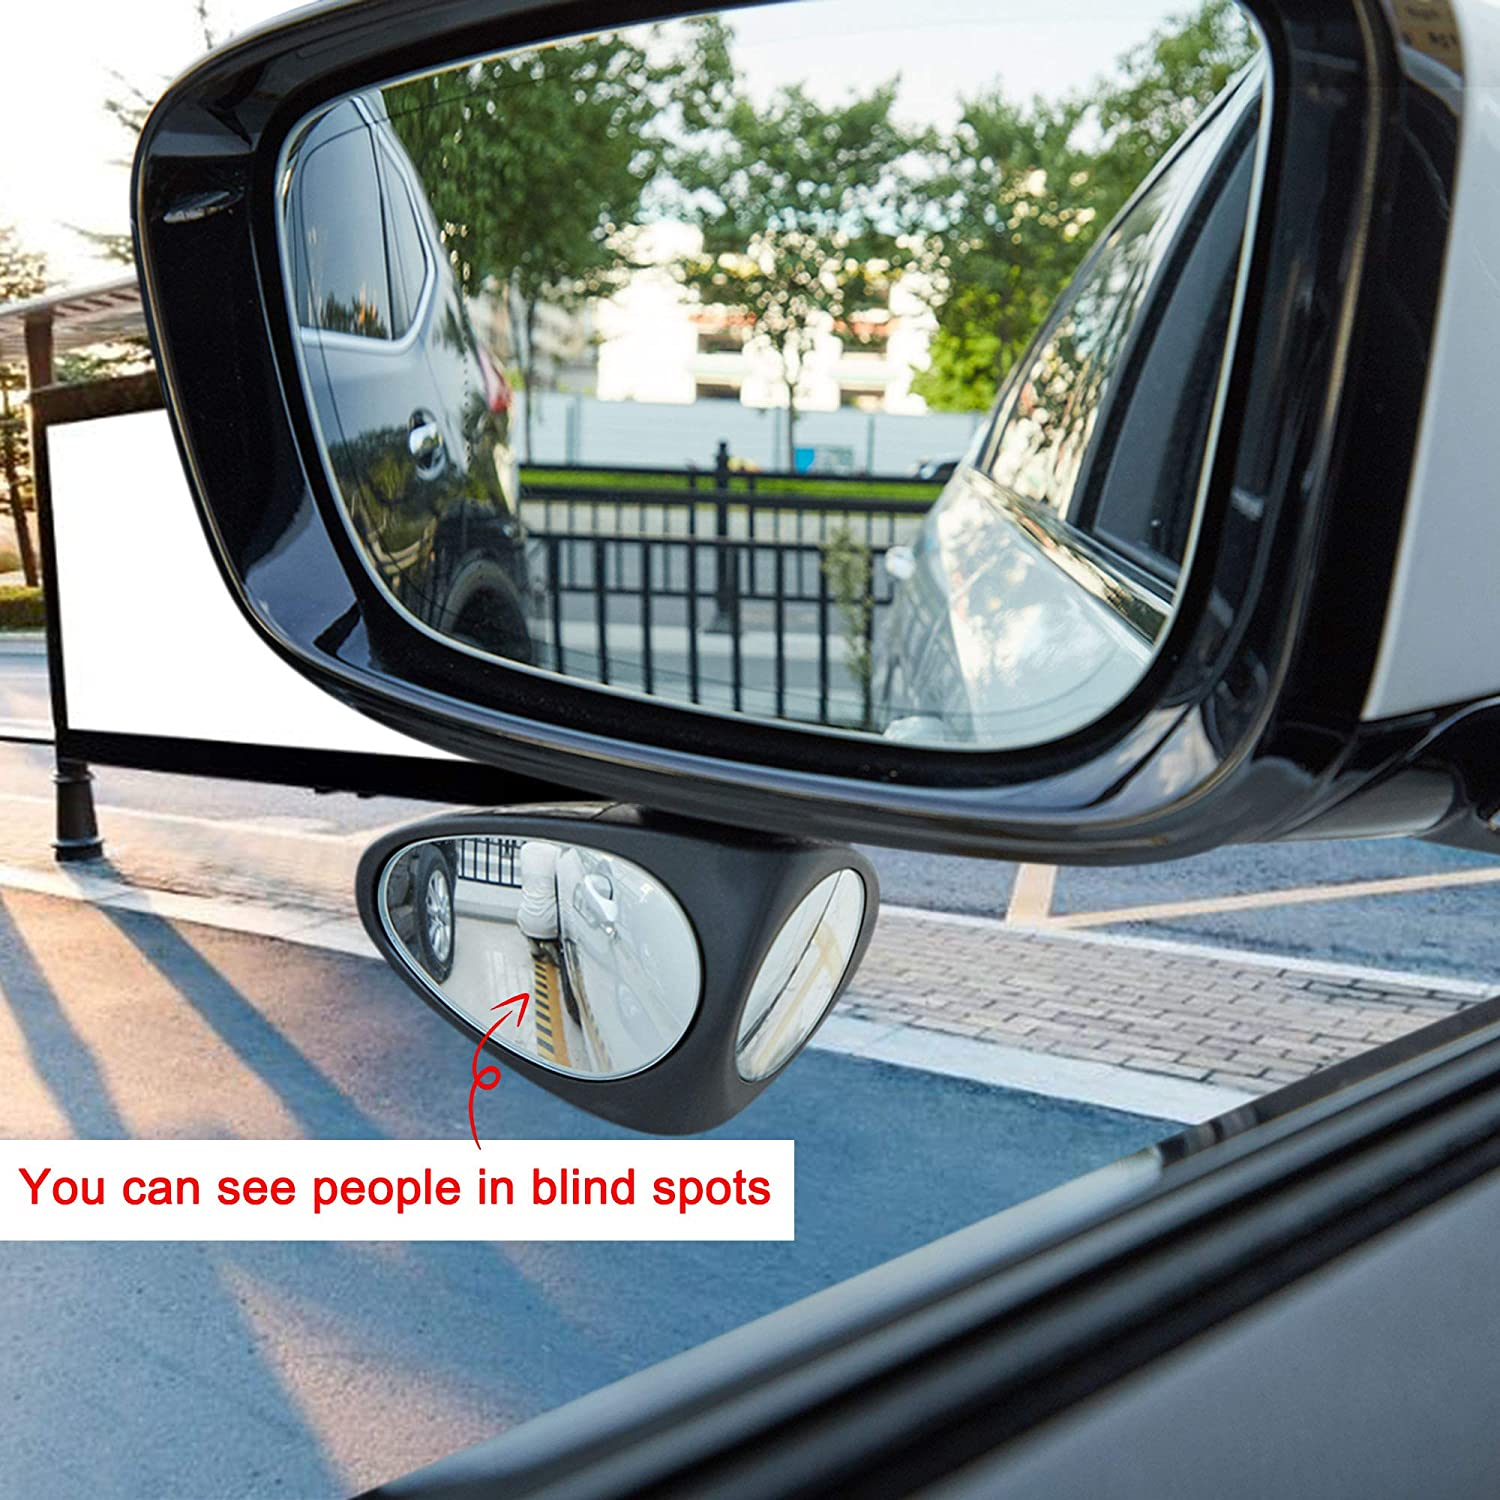 TOMALL 2 in 1 Car Blind Spot Mirror 360 Rotation Adjustable HD Glass Wide Angle Convex Rear View Mirror Blind Spot for Front//Rear wheels Observation Self Adhesive Universal Accessories Right